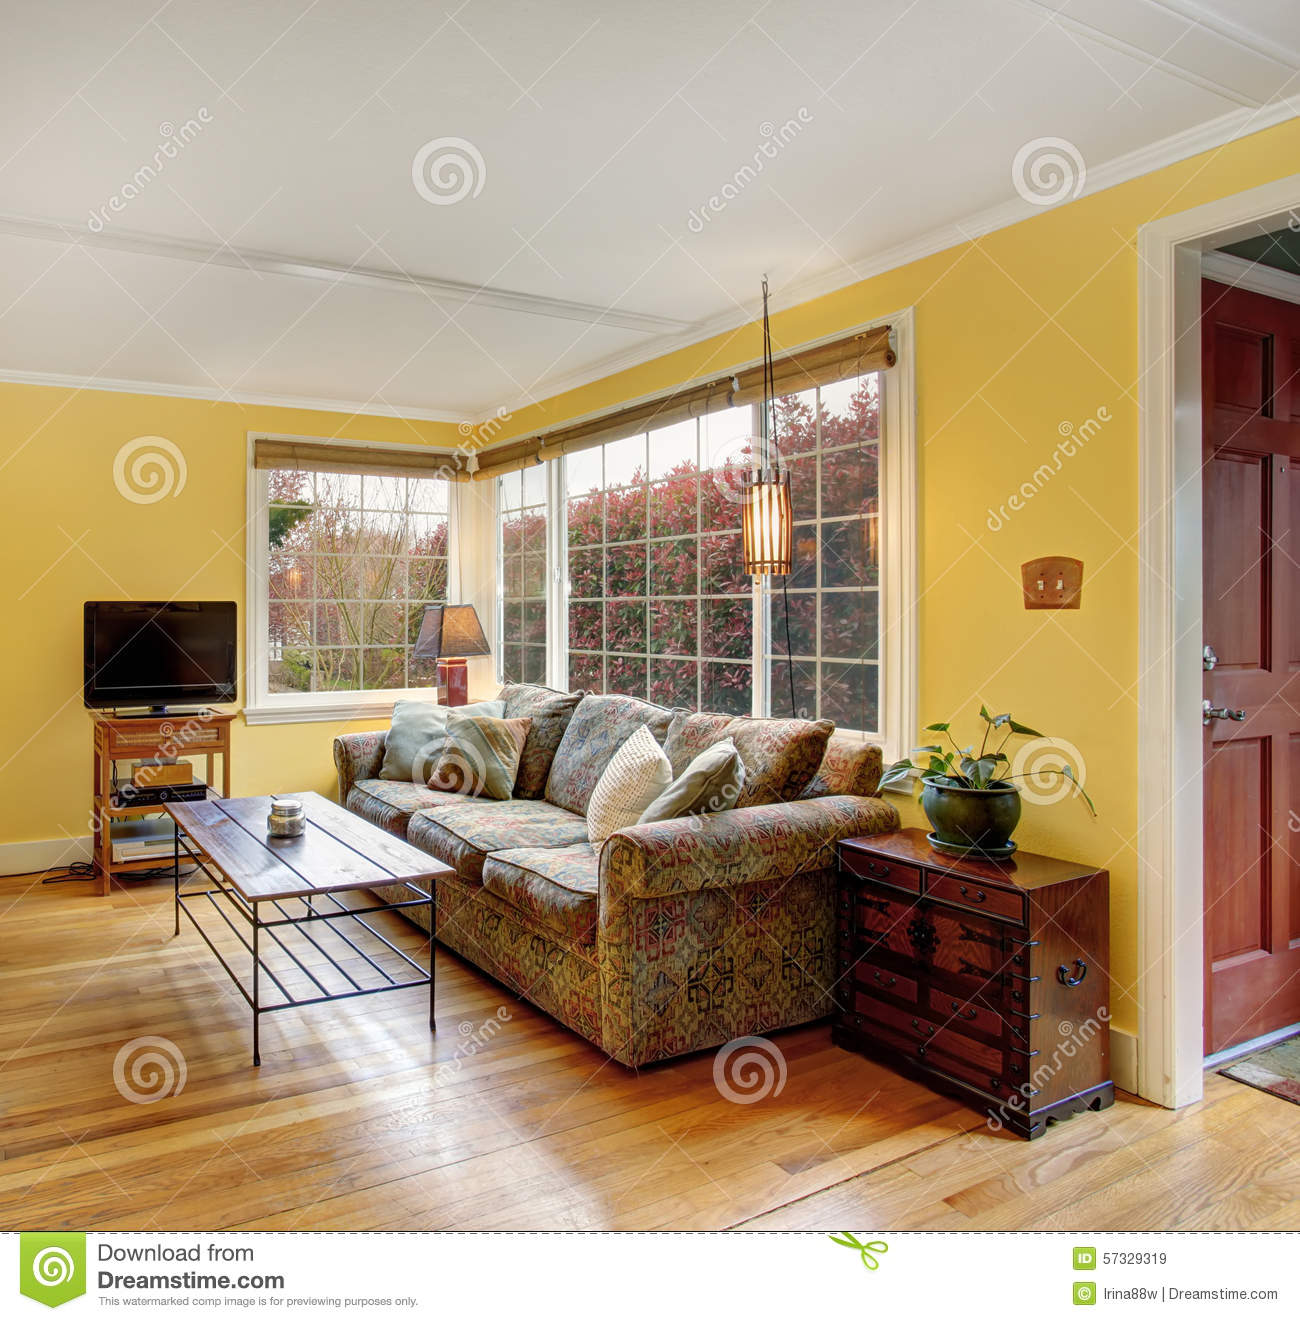 Lovely Hardwood Living Room With Colorful Sofa And Yellow